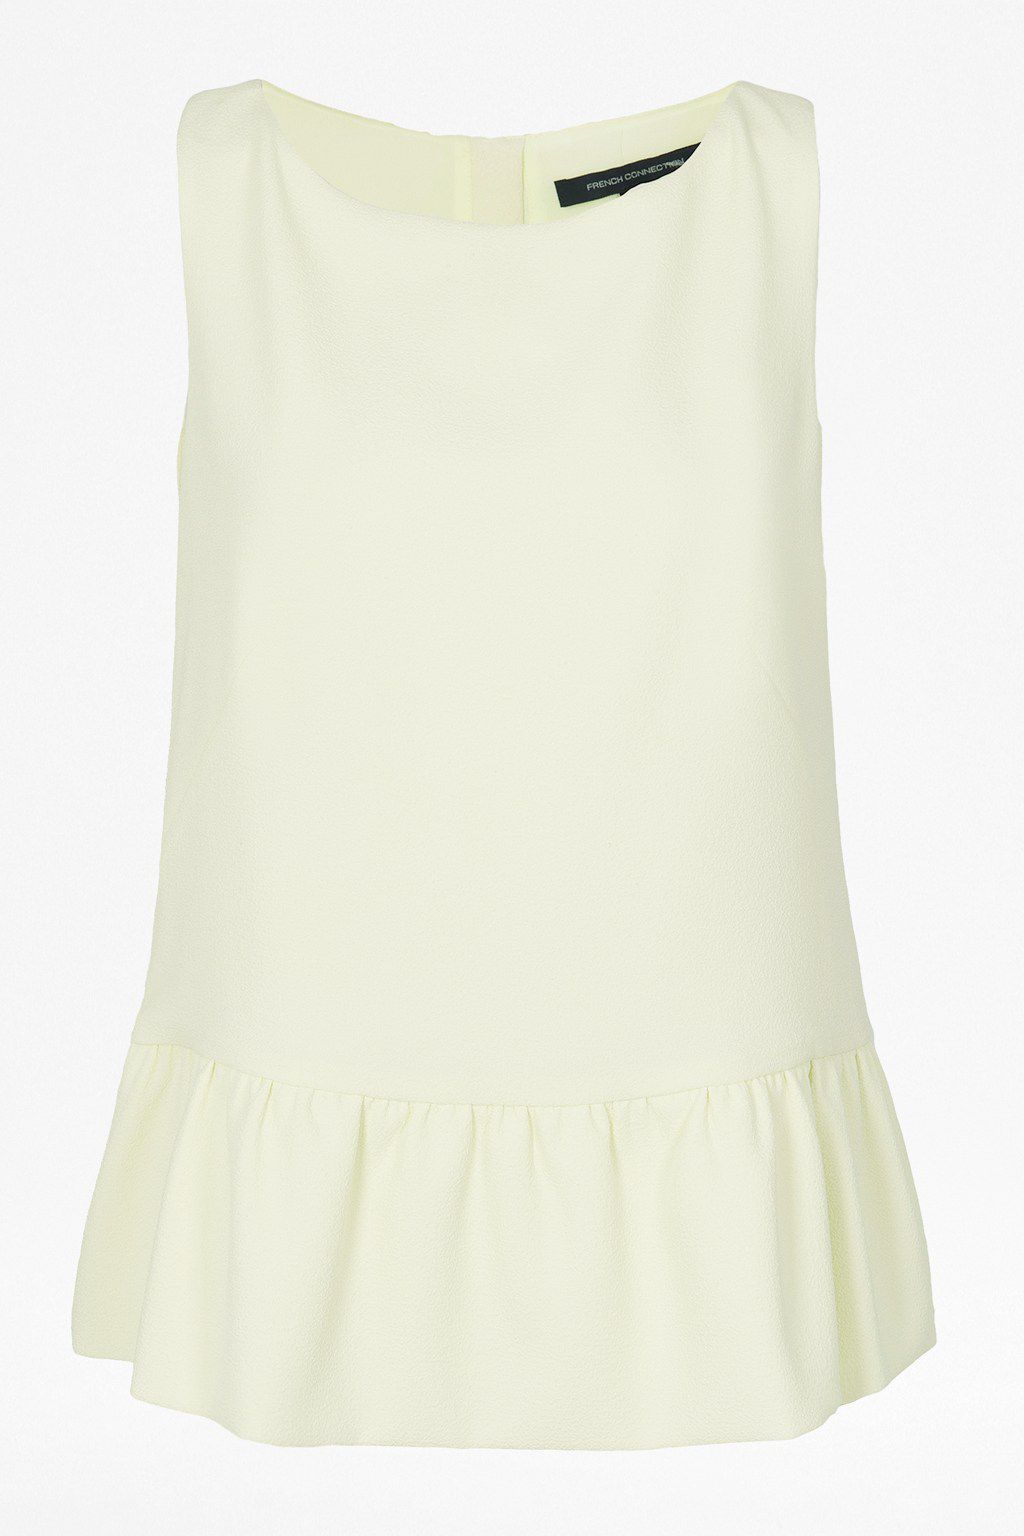 Tennis crepe sleeve less top